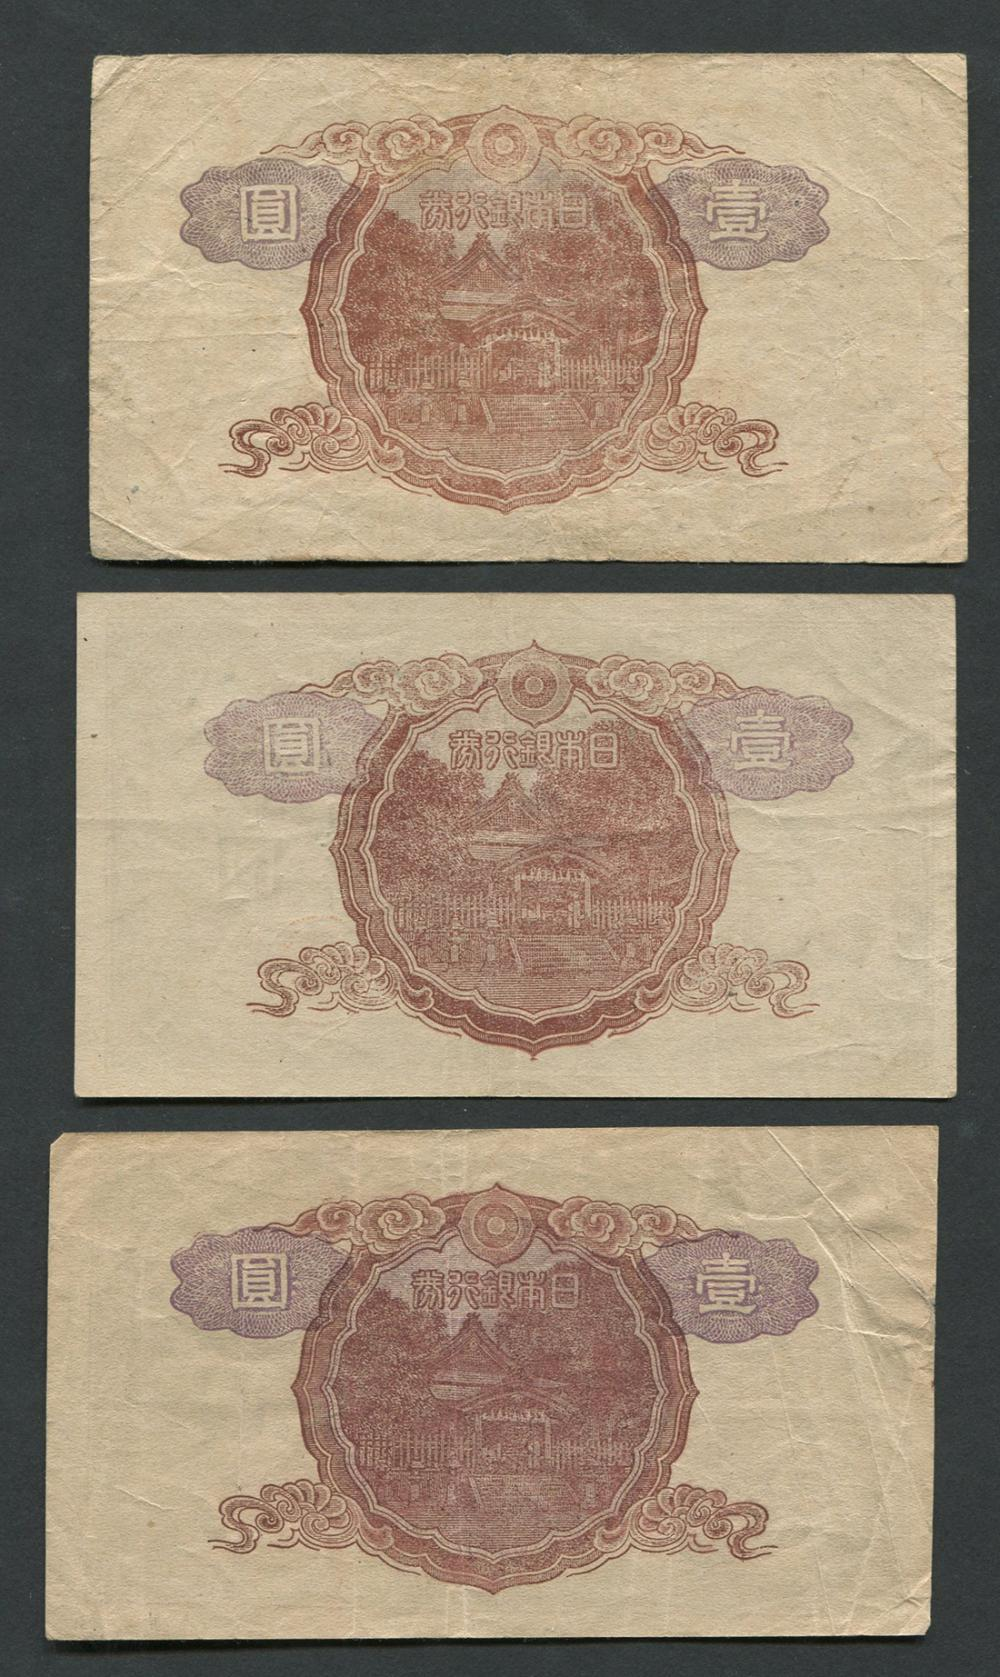 China Banknotes and Stamps Collection